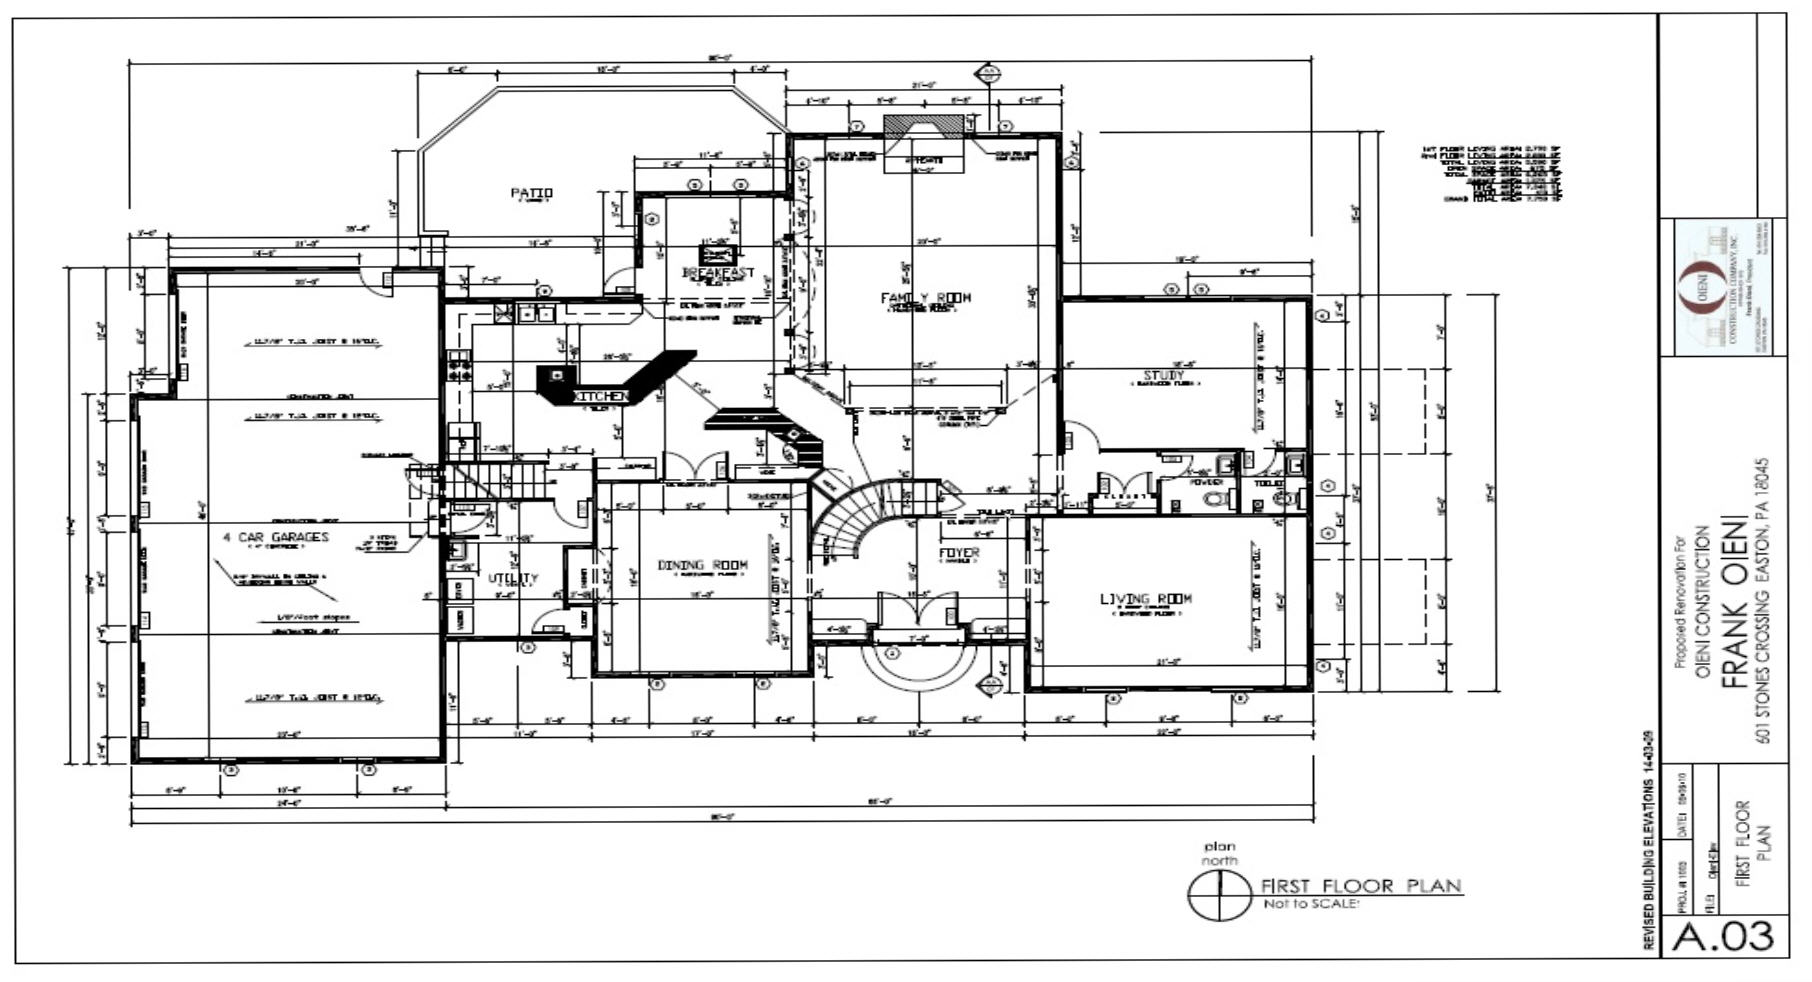 Oieni construction brodhead floor plans Floor plans with pictures